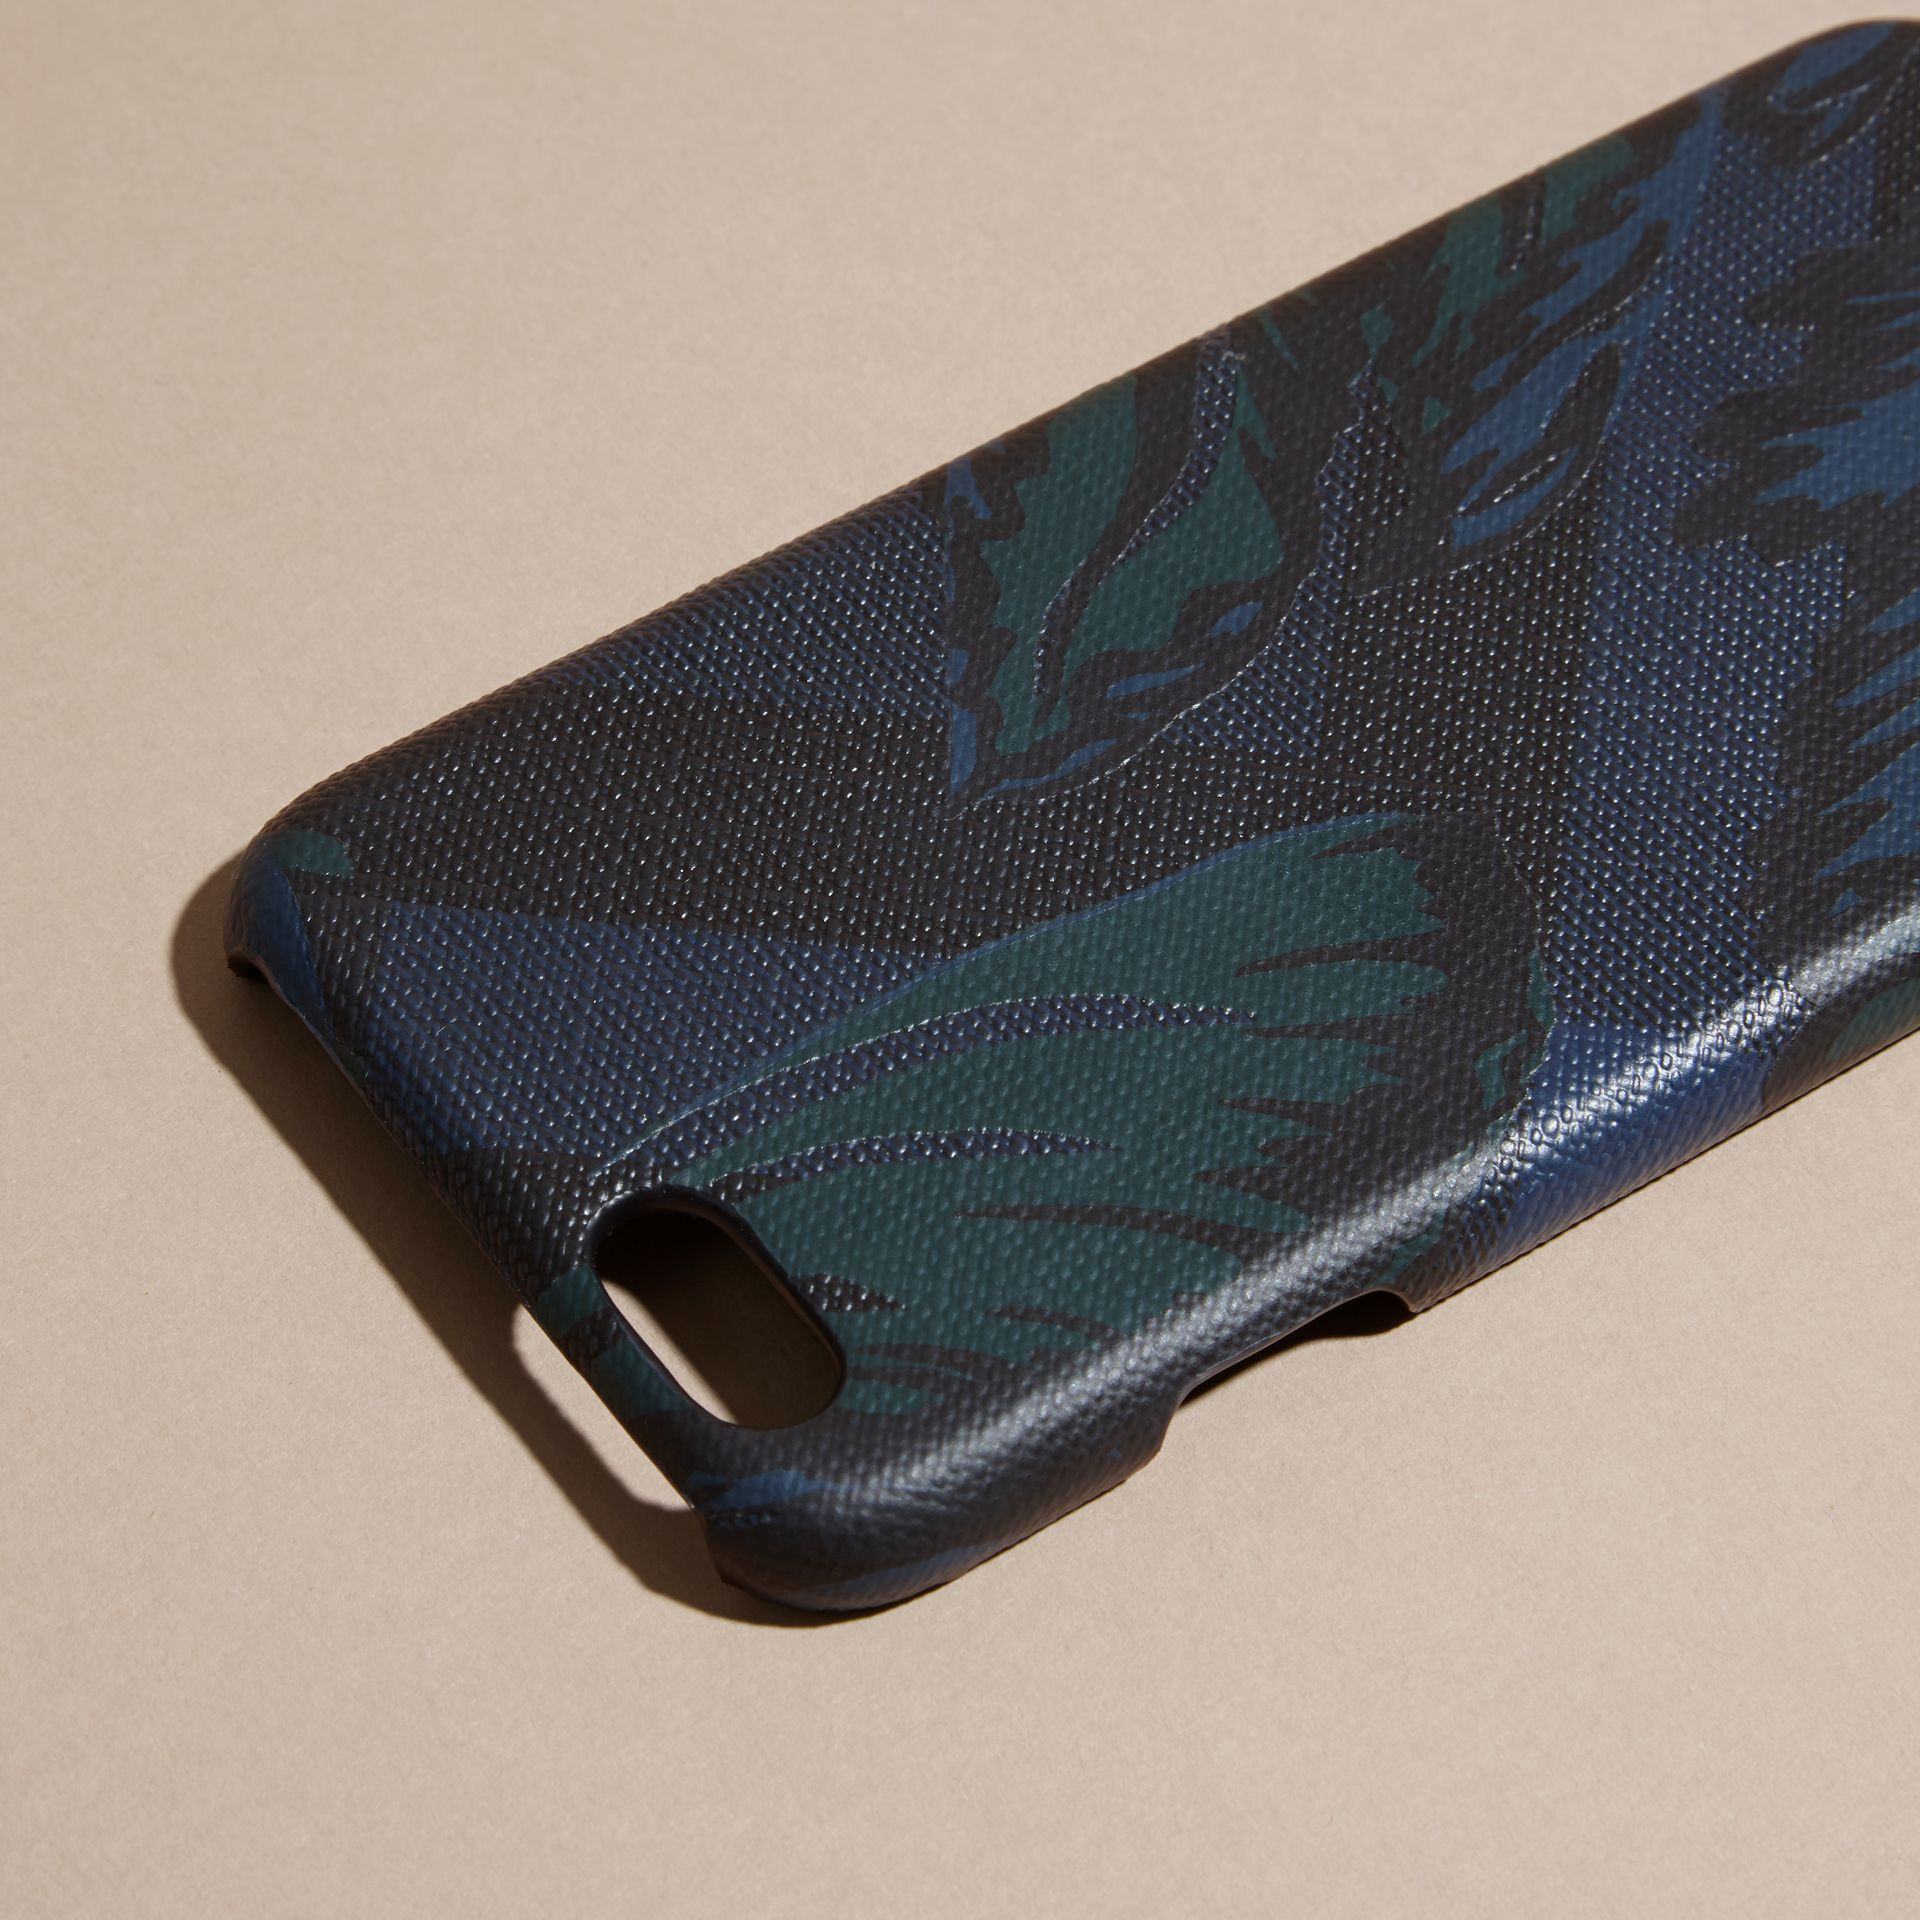 Floral Print London Check iPhone 6 Case - gallery image 2